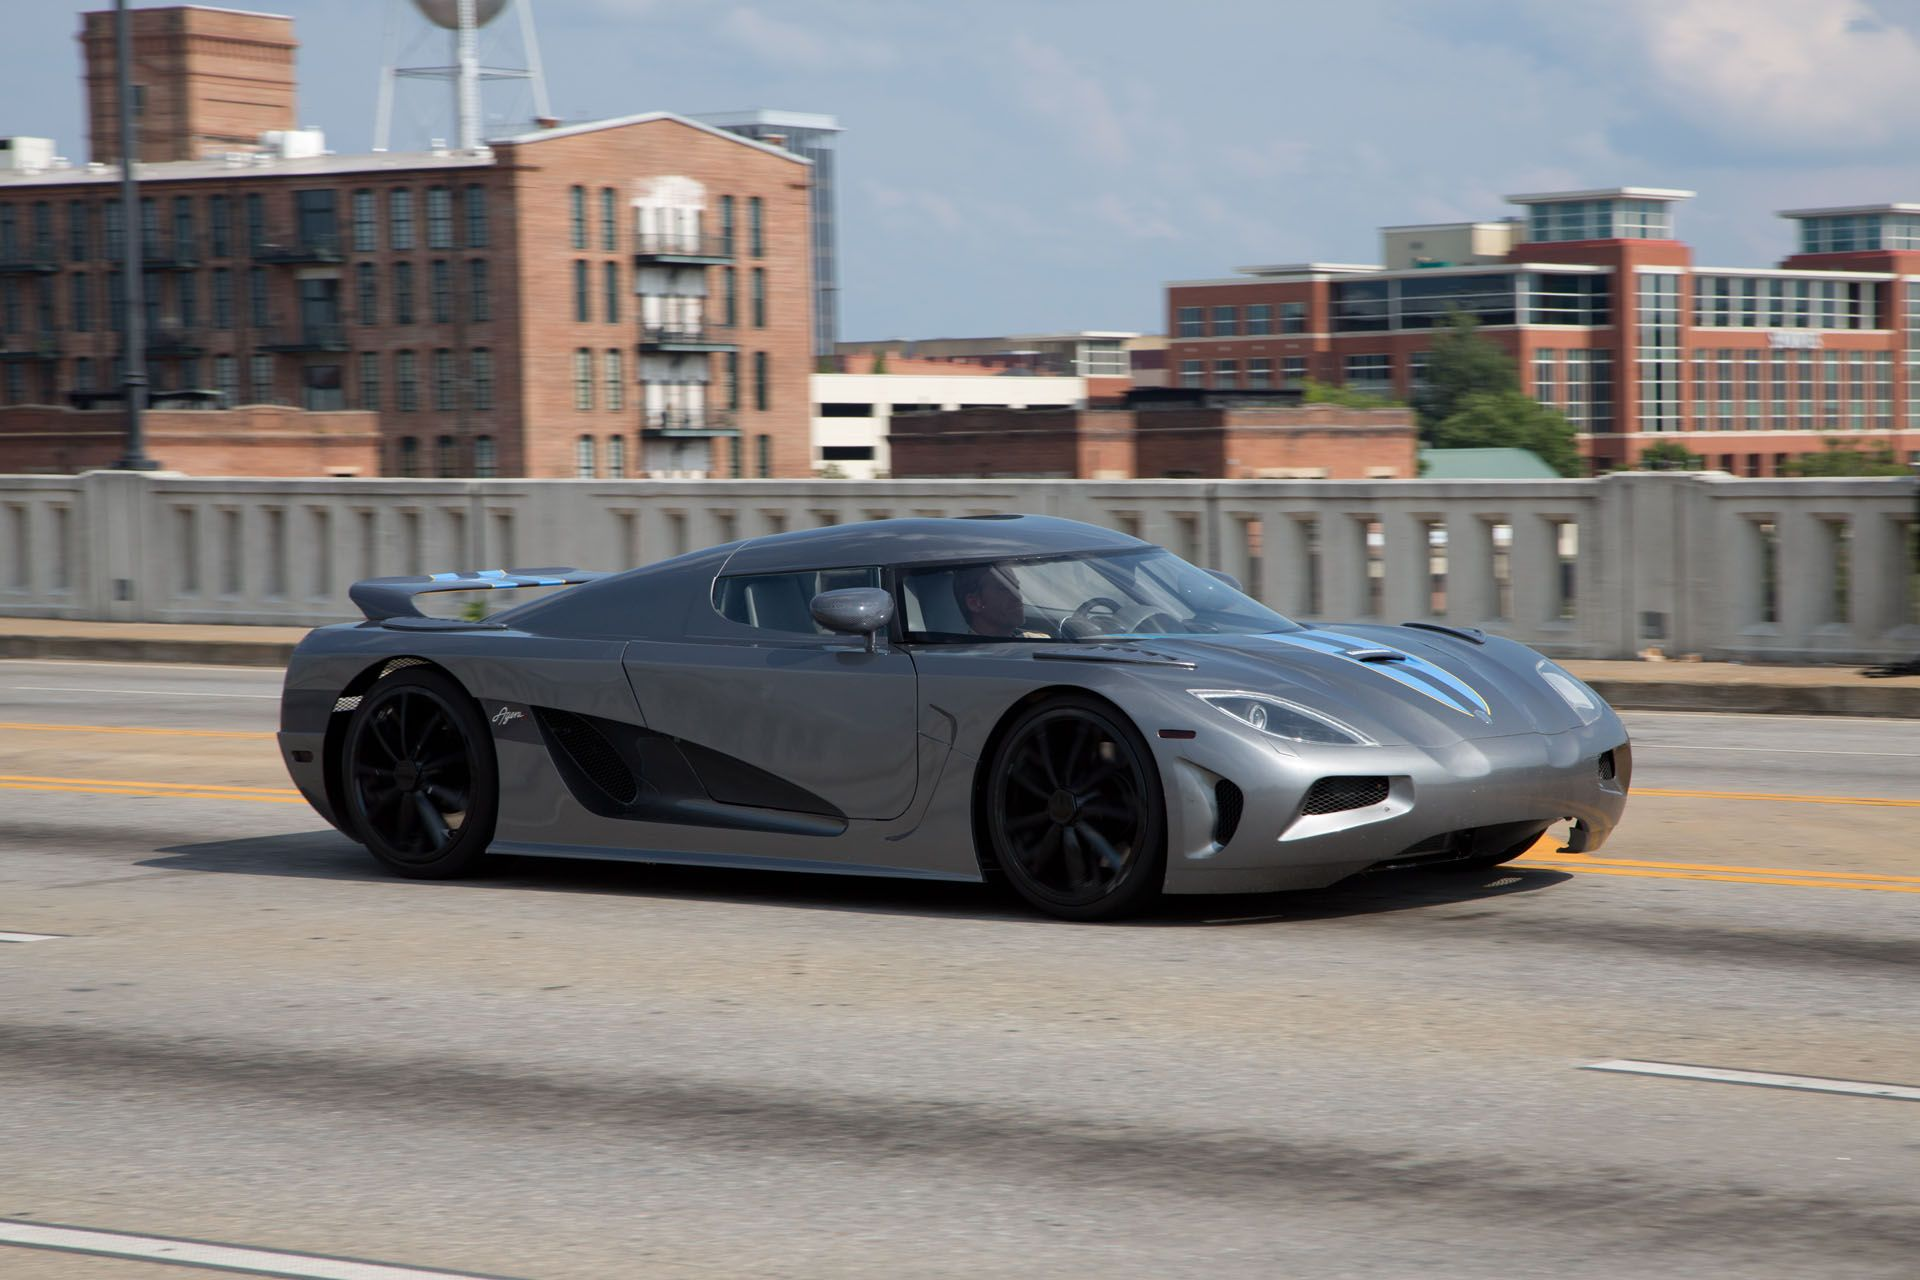 Need For Speed Movie Cars Koenigsegg Agera R